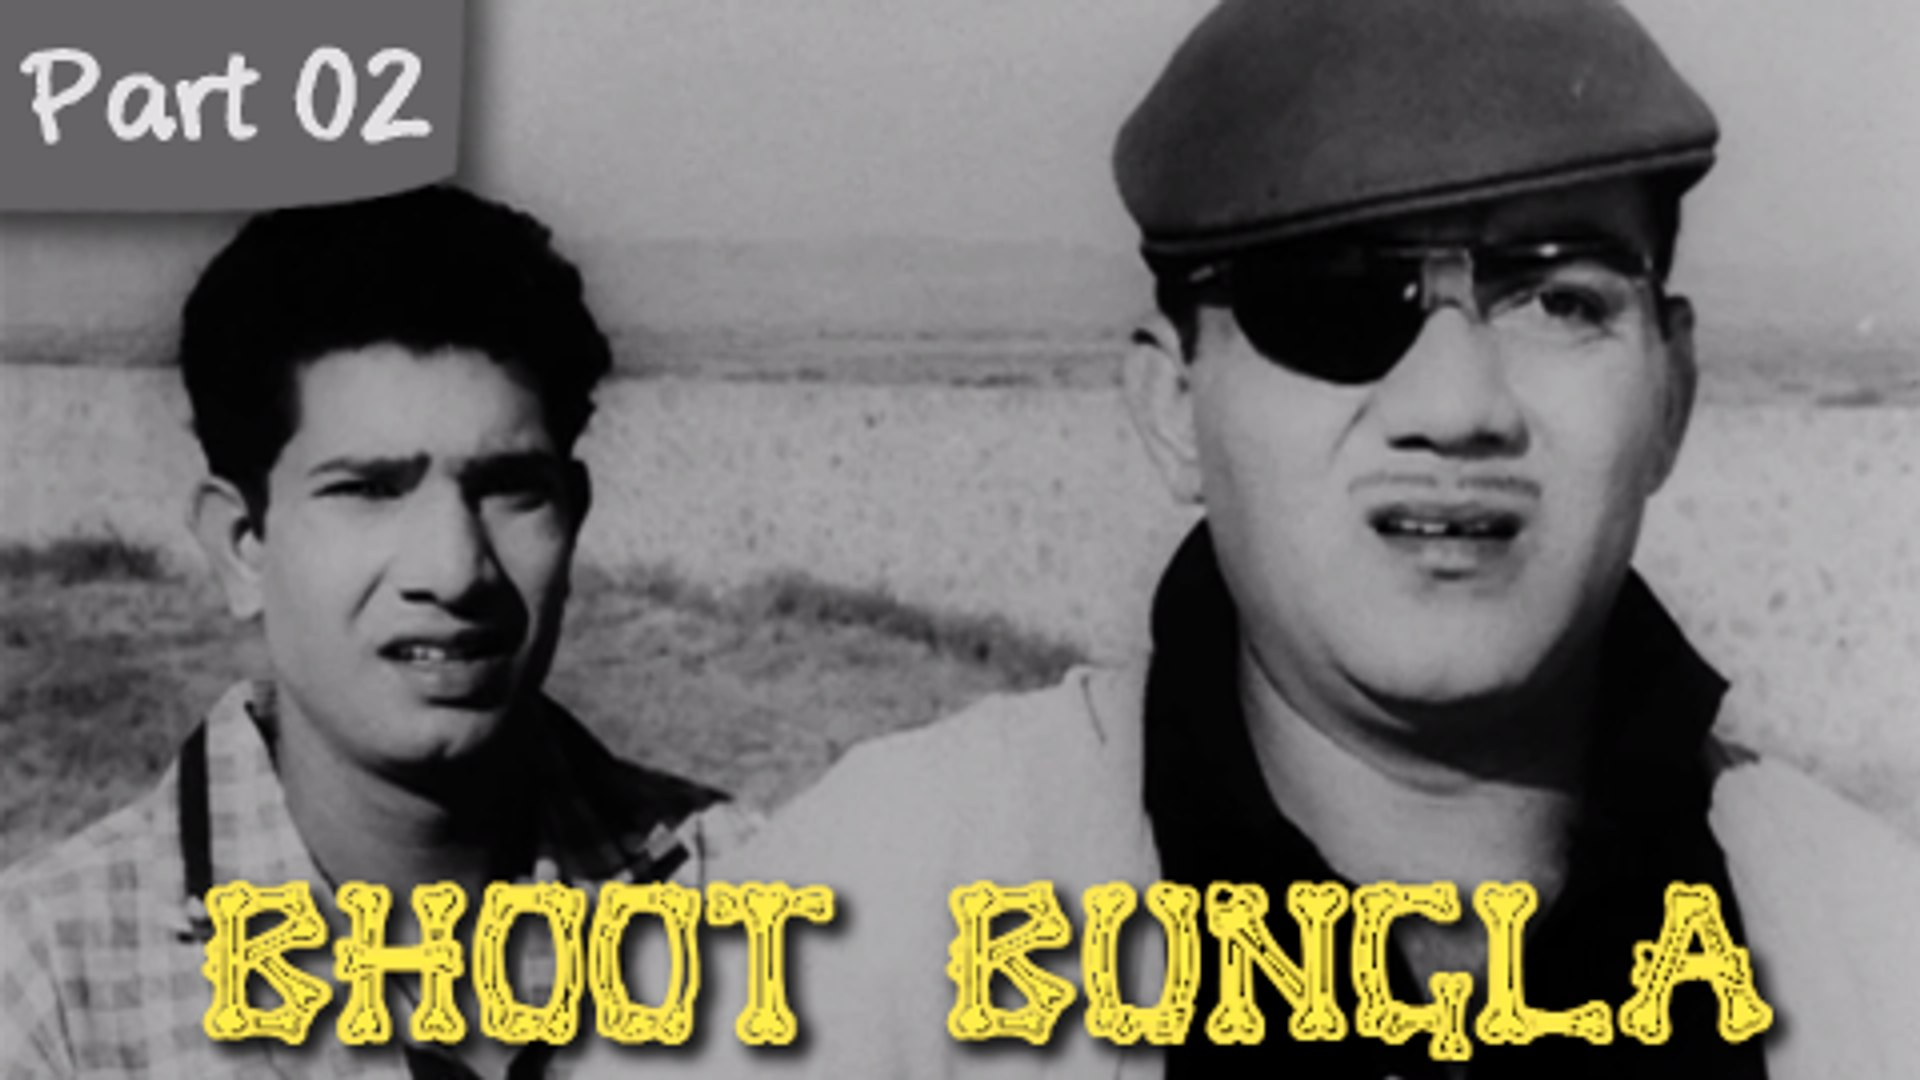 Bhoot Bungla - Part 02/14 - Classic Super Hit Hindi Movie - Mehmood, Tanuja, Nazir Hussain